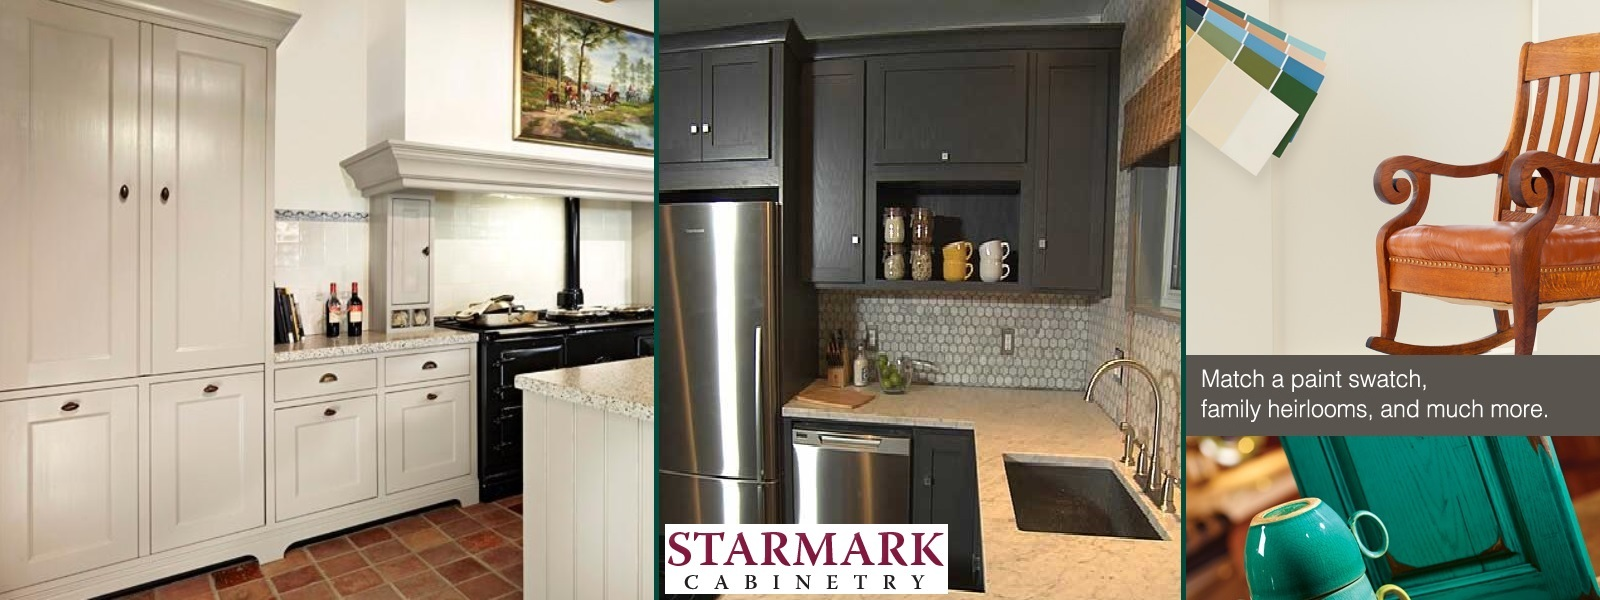 kitchen remodeling company lancaster pa shakespeare hic starmark cabinetry is esp certified which means they use sustainable practices and products they are also carb compliant which in laymen s terms means